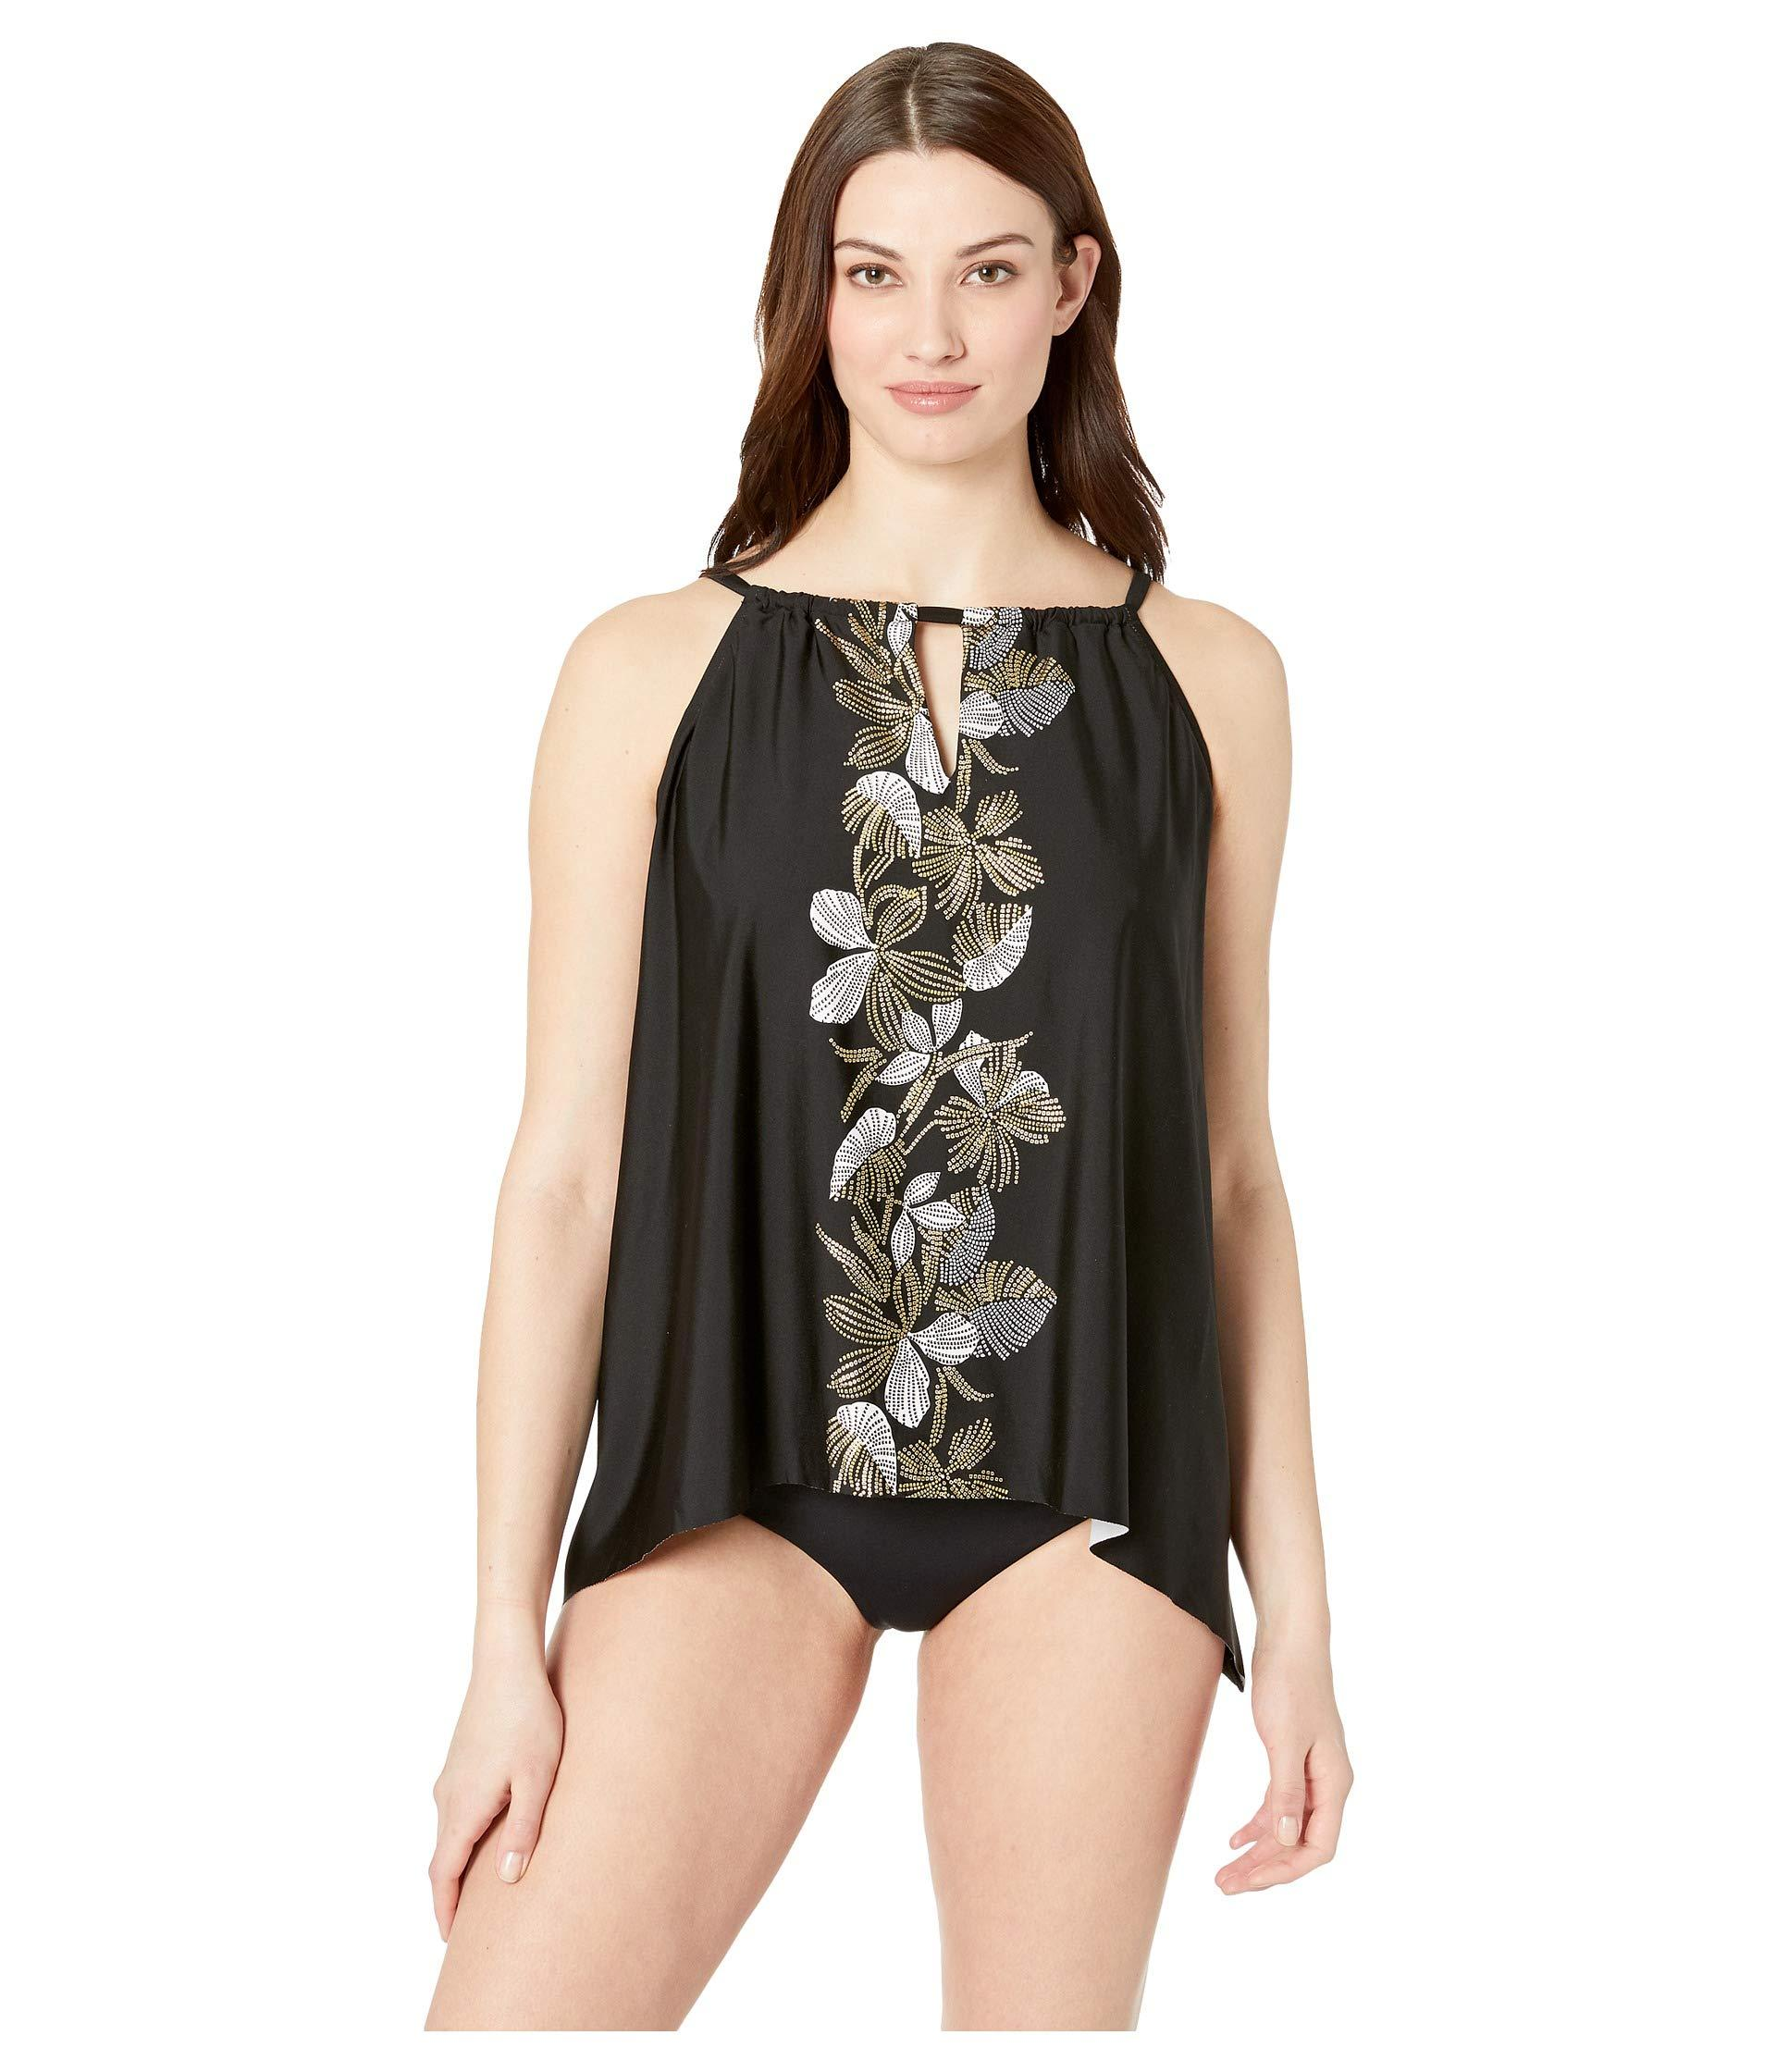 3b92f461ece Lyst - Miraclesuit Petal To The Metal Dd-cup Peephole Tankini Top ...